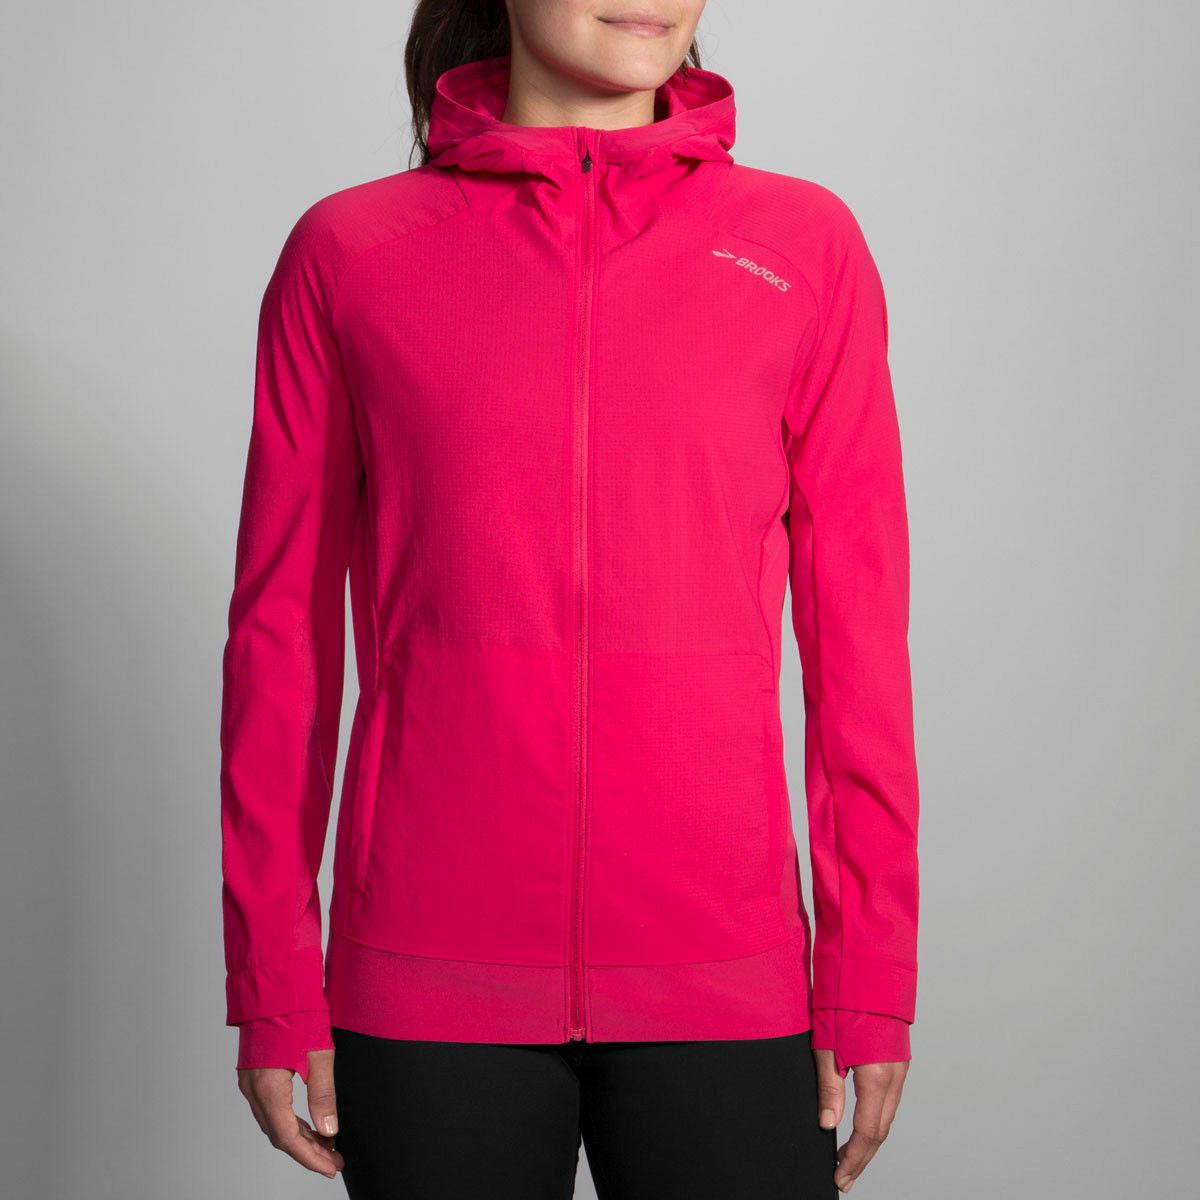 b2268830a9019 Winter Jackets for Running